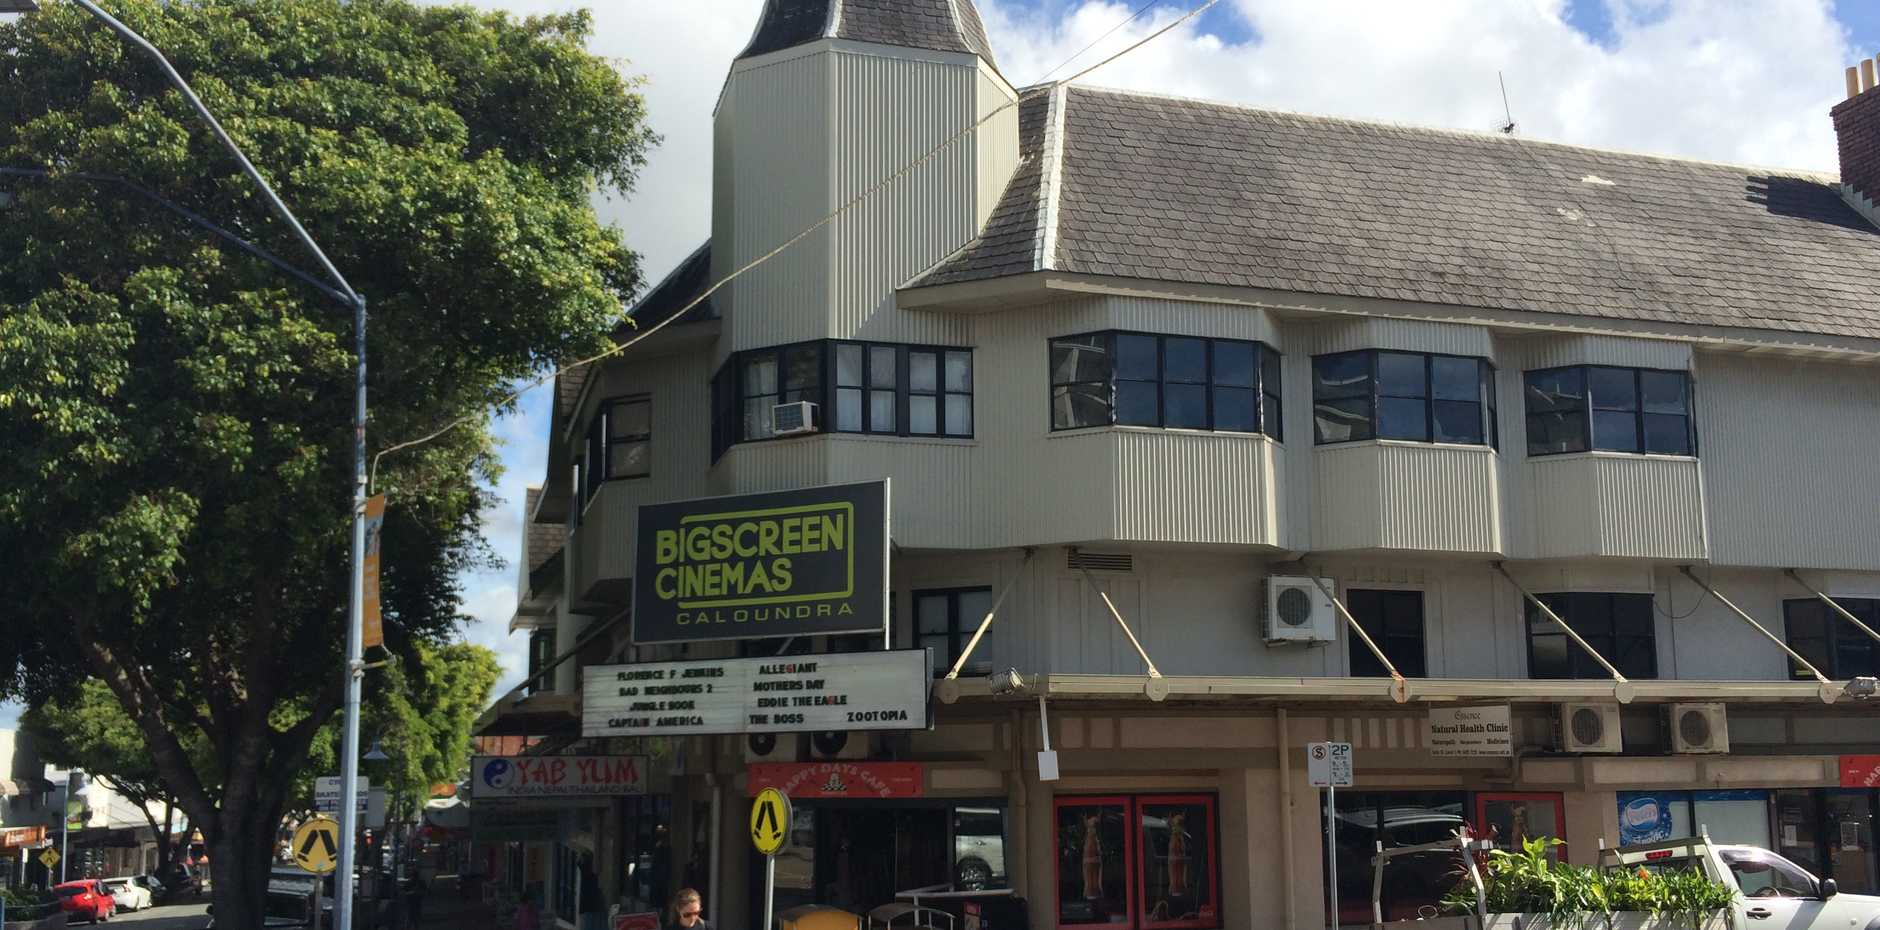 The Big Screen Cinemas was the scene of an armed robbery yesterday.